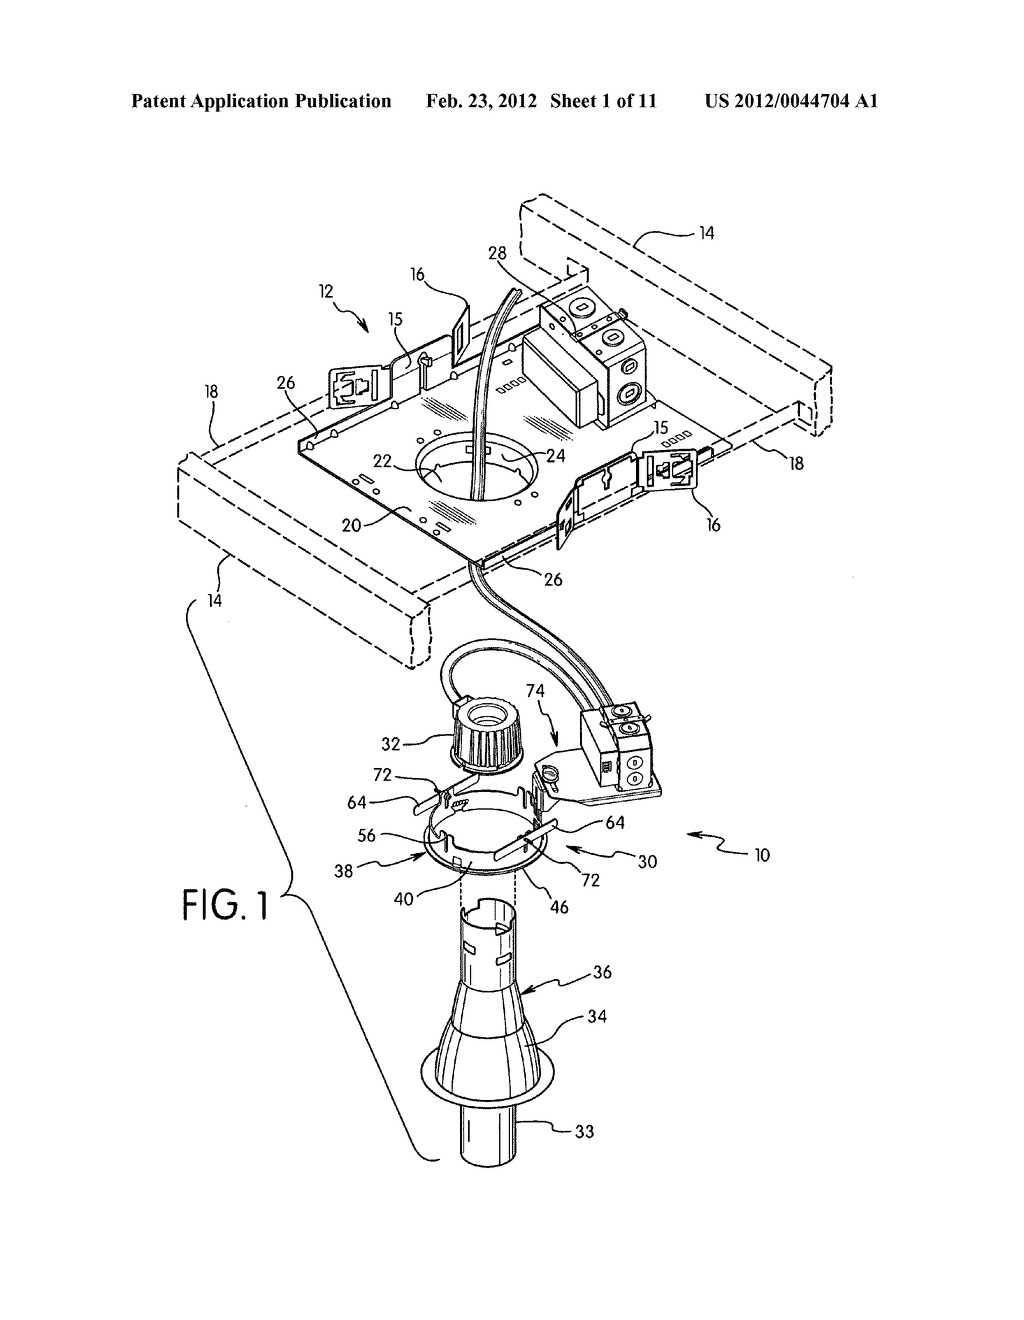 Electrical Box And Ballast Mounting Assembly For Retrofitting Junction Wiring Diagram Light Fixture Recessed Lighting Fixtures Schematic Image 02